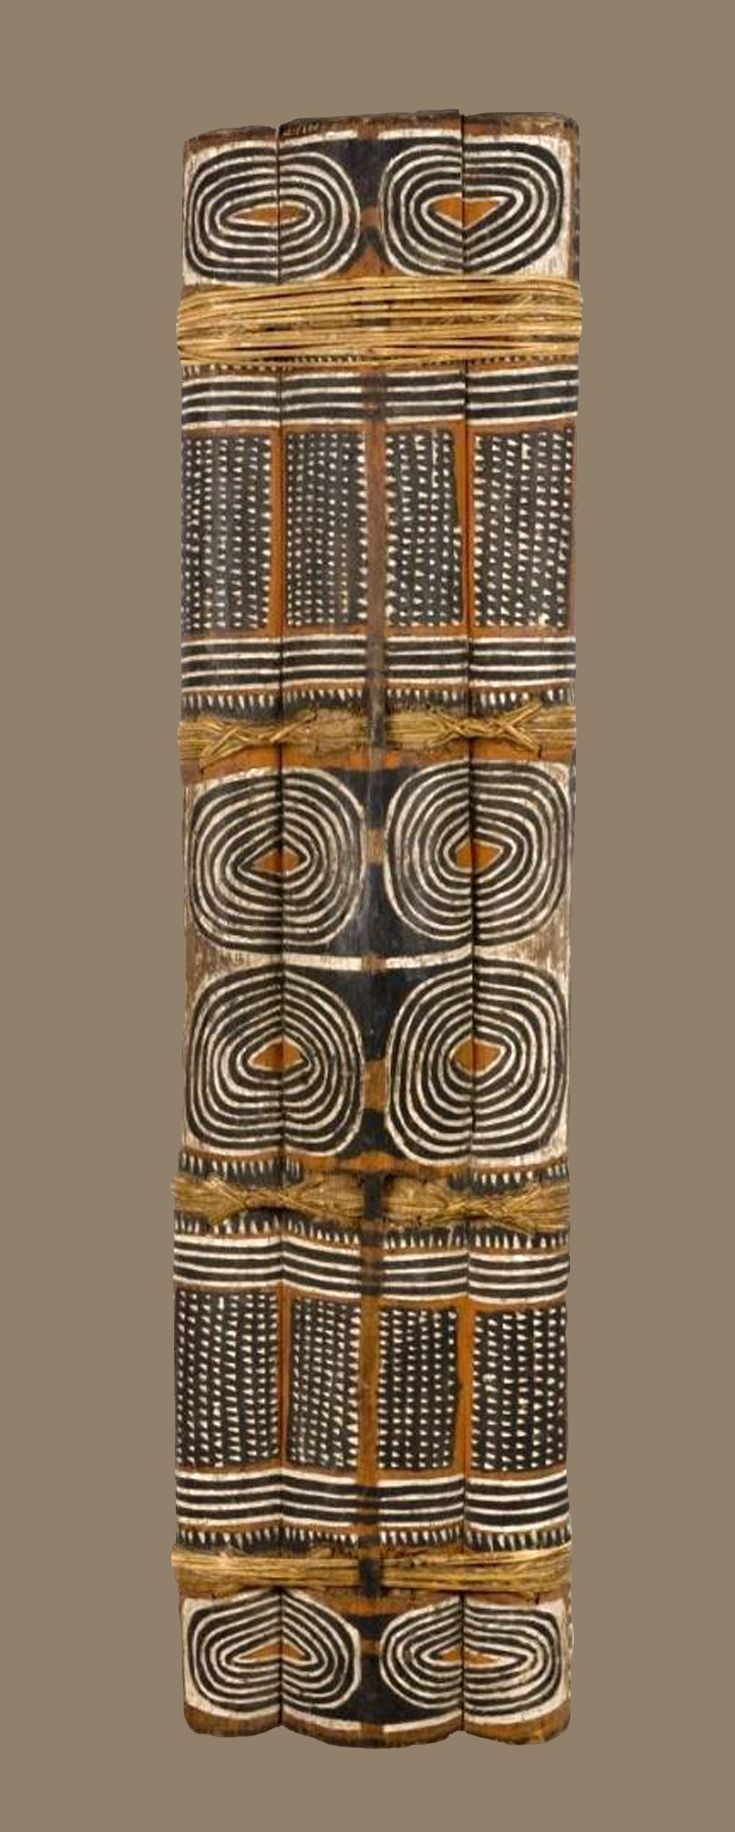 Tumblr. Shield, Papua New Guinea.  Love this pattern and colors!